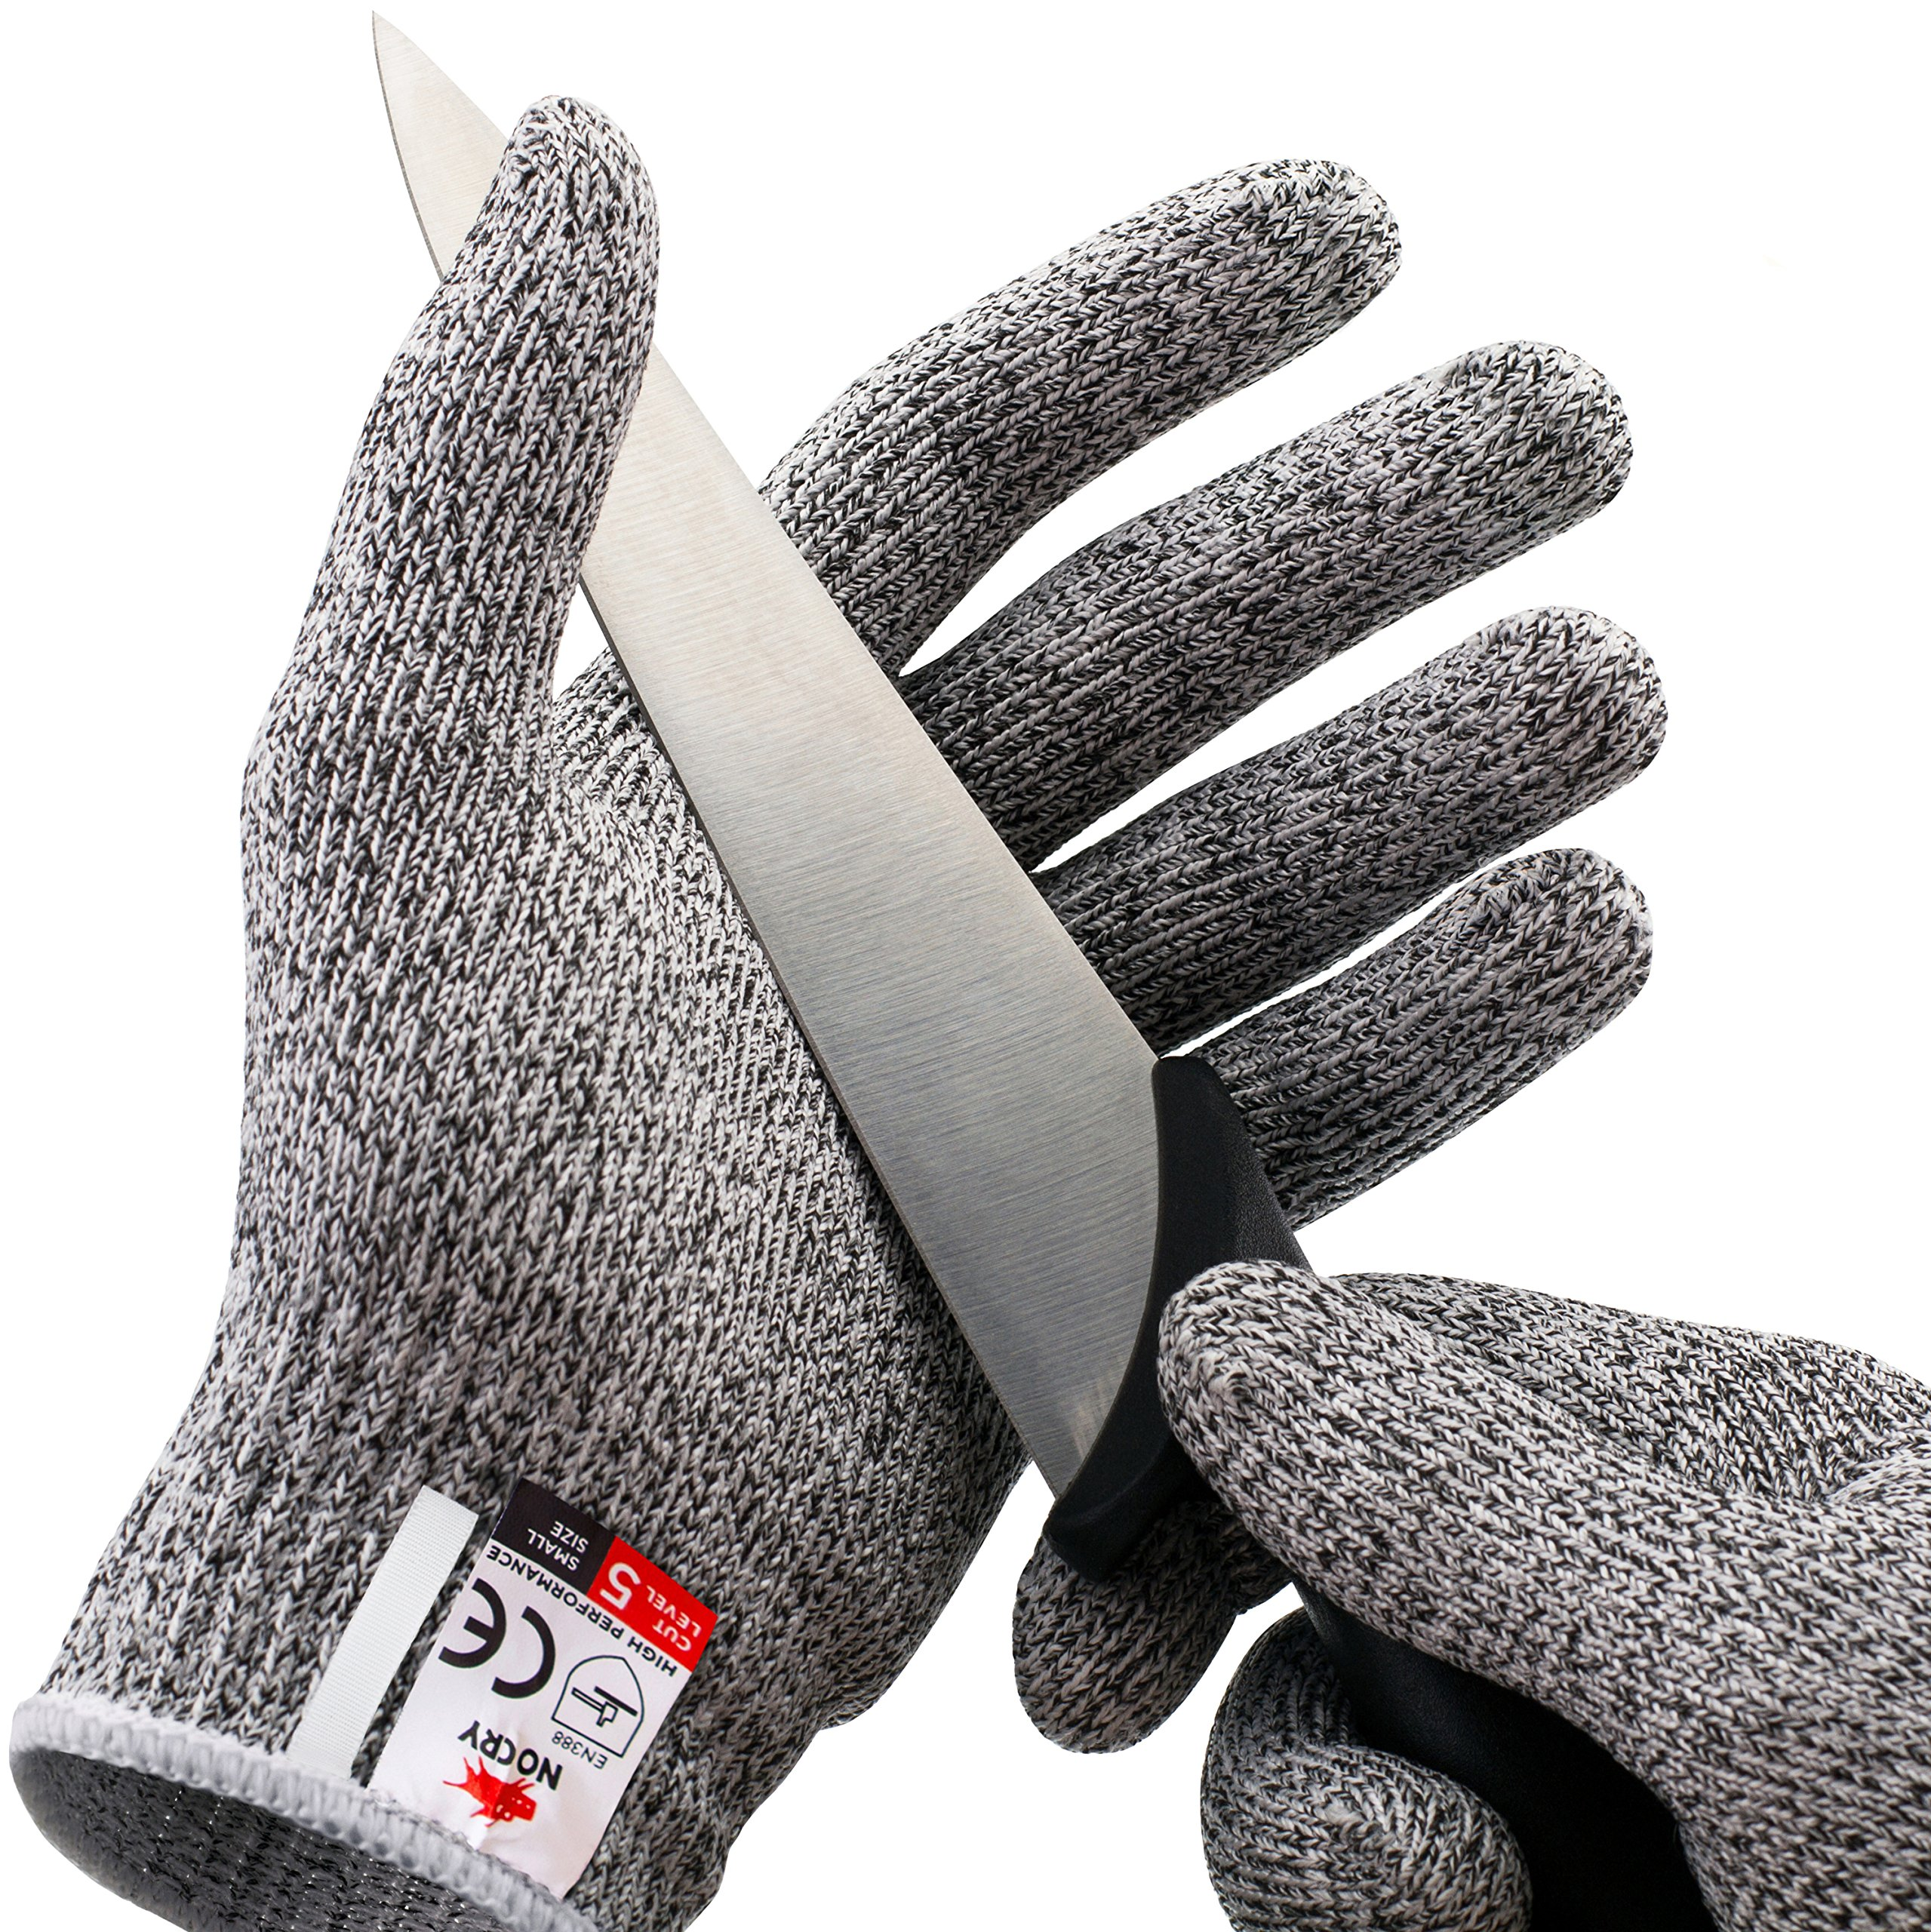 NoCry Cut Resistant Gloves - High Performance Level 5 Protection, Food Grade. Size Medium, Free Ebook Included! by NoCry